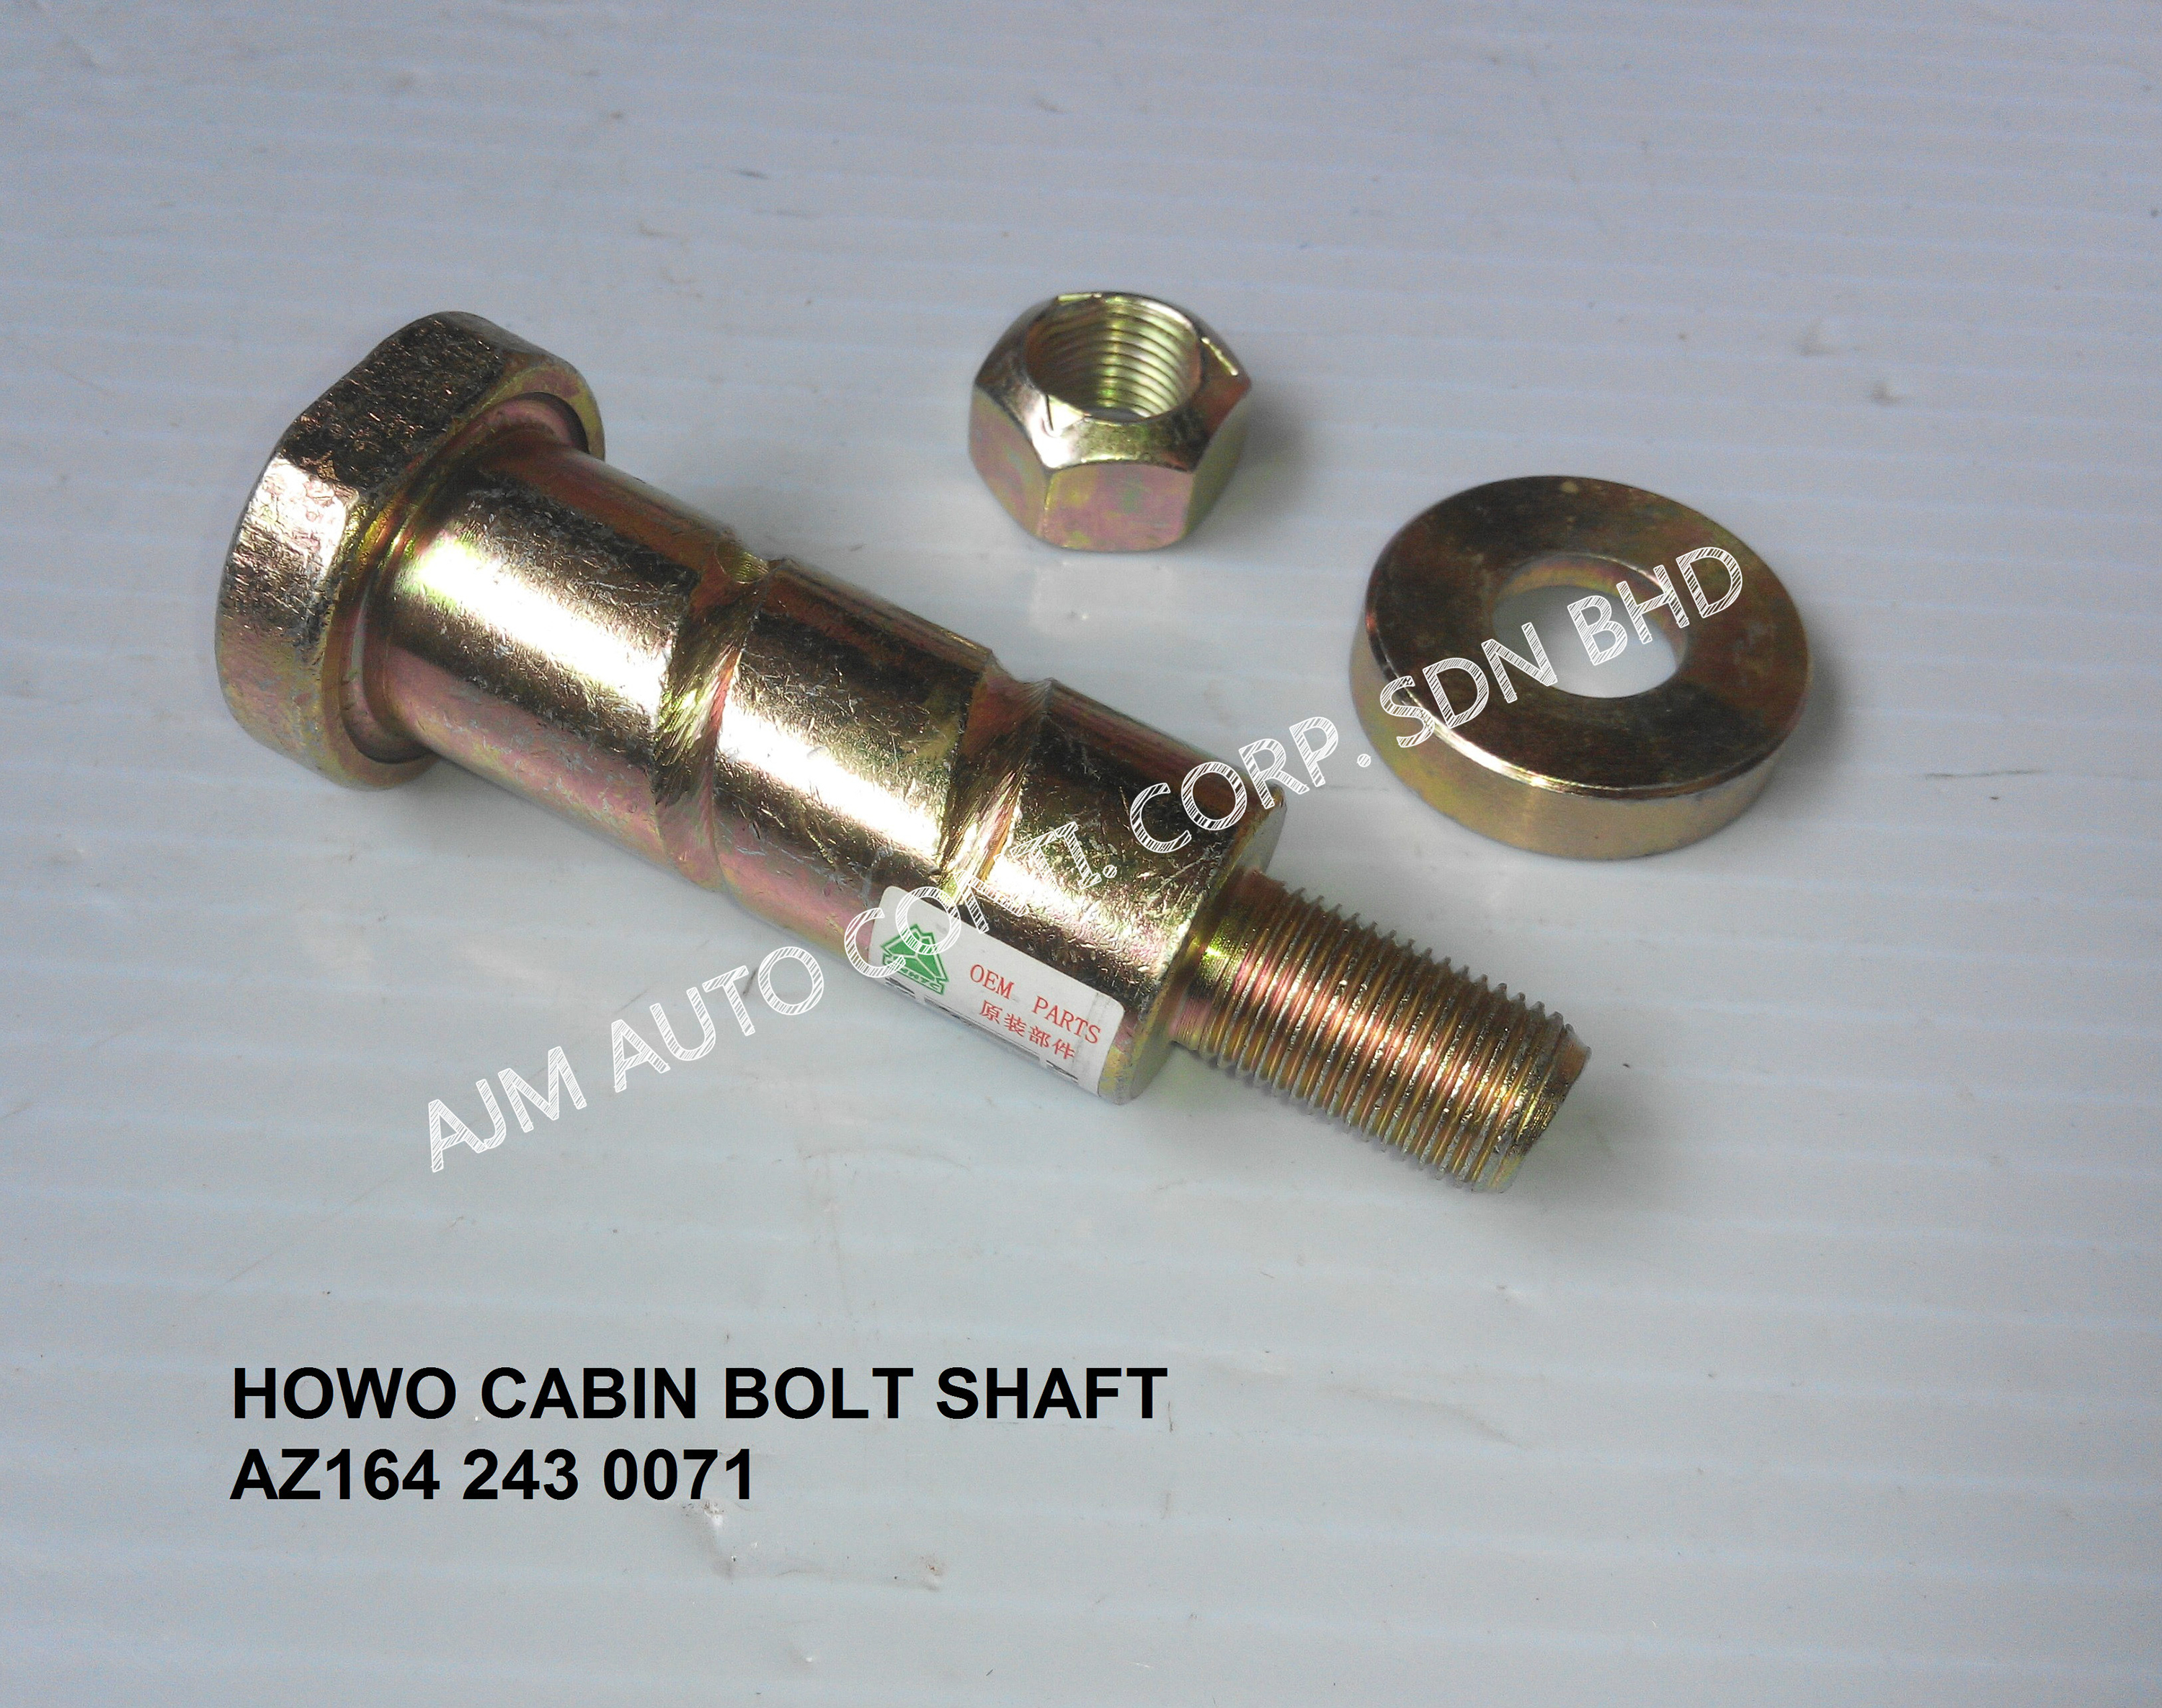 SINOTRUCK_HOWO_CABIN_BOLT_SHAFT-AZ1642430071